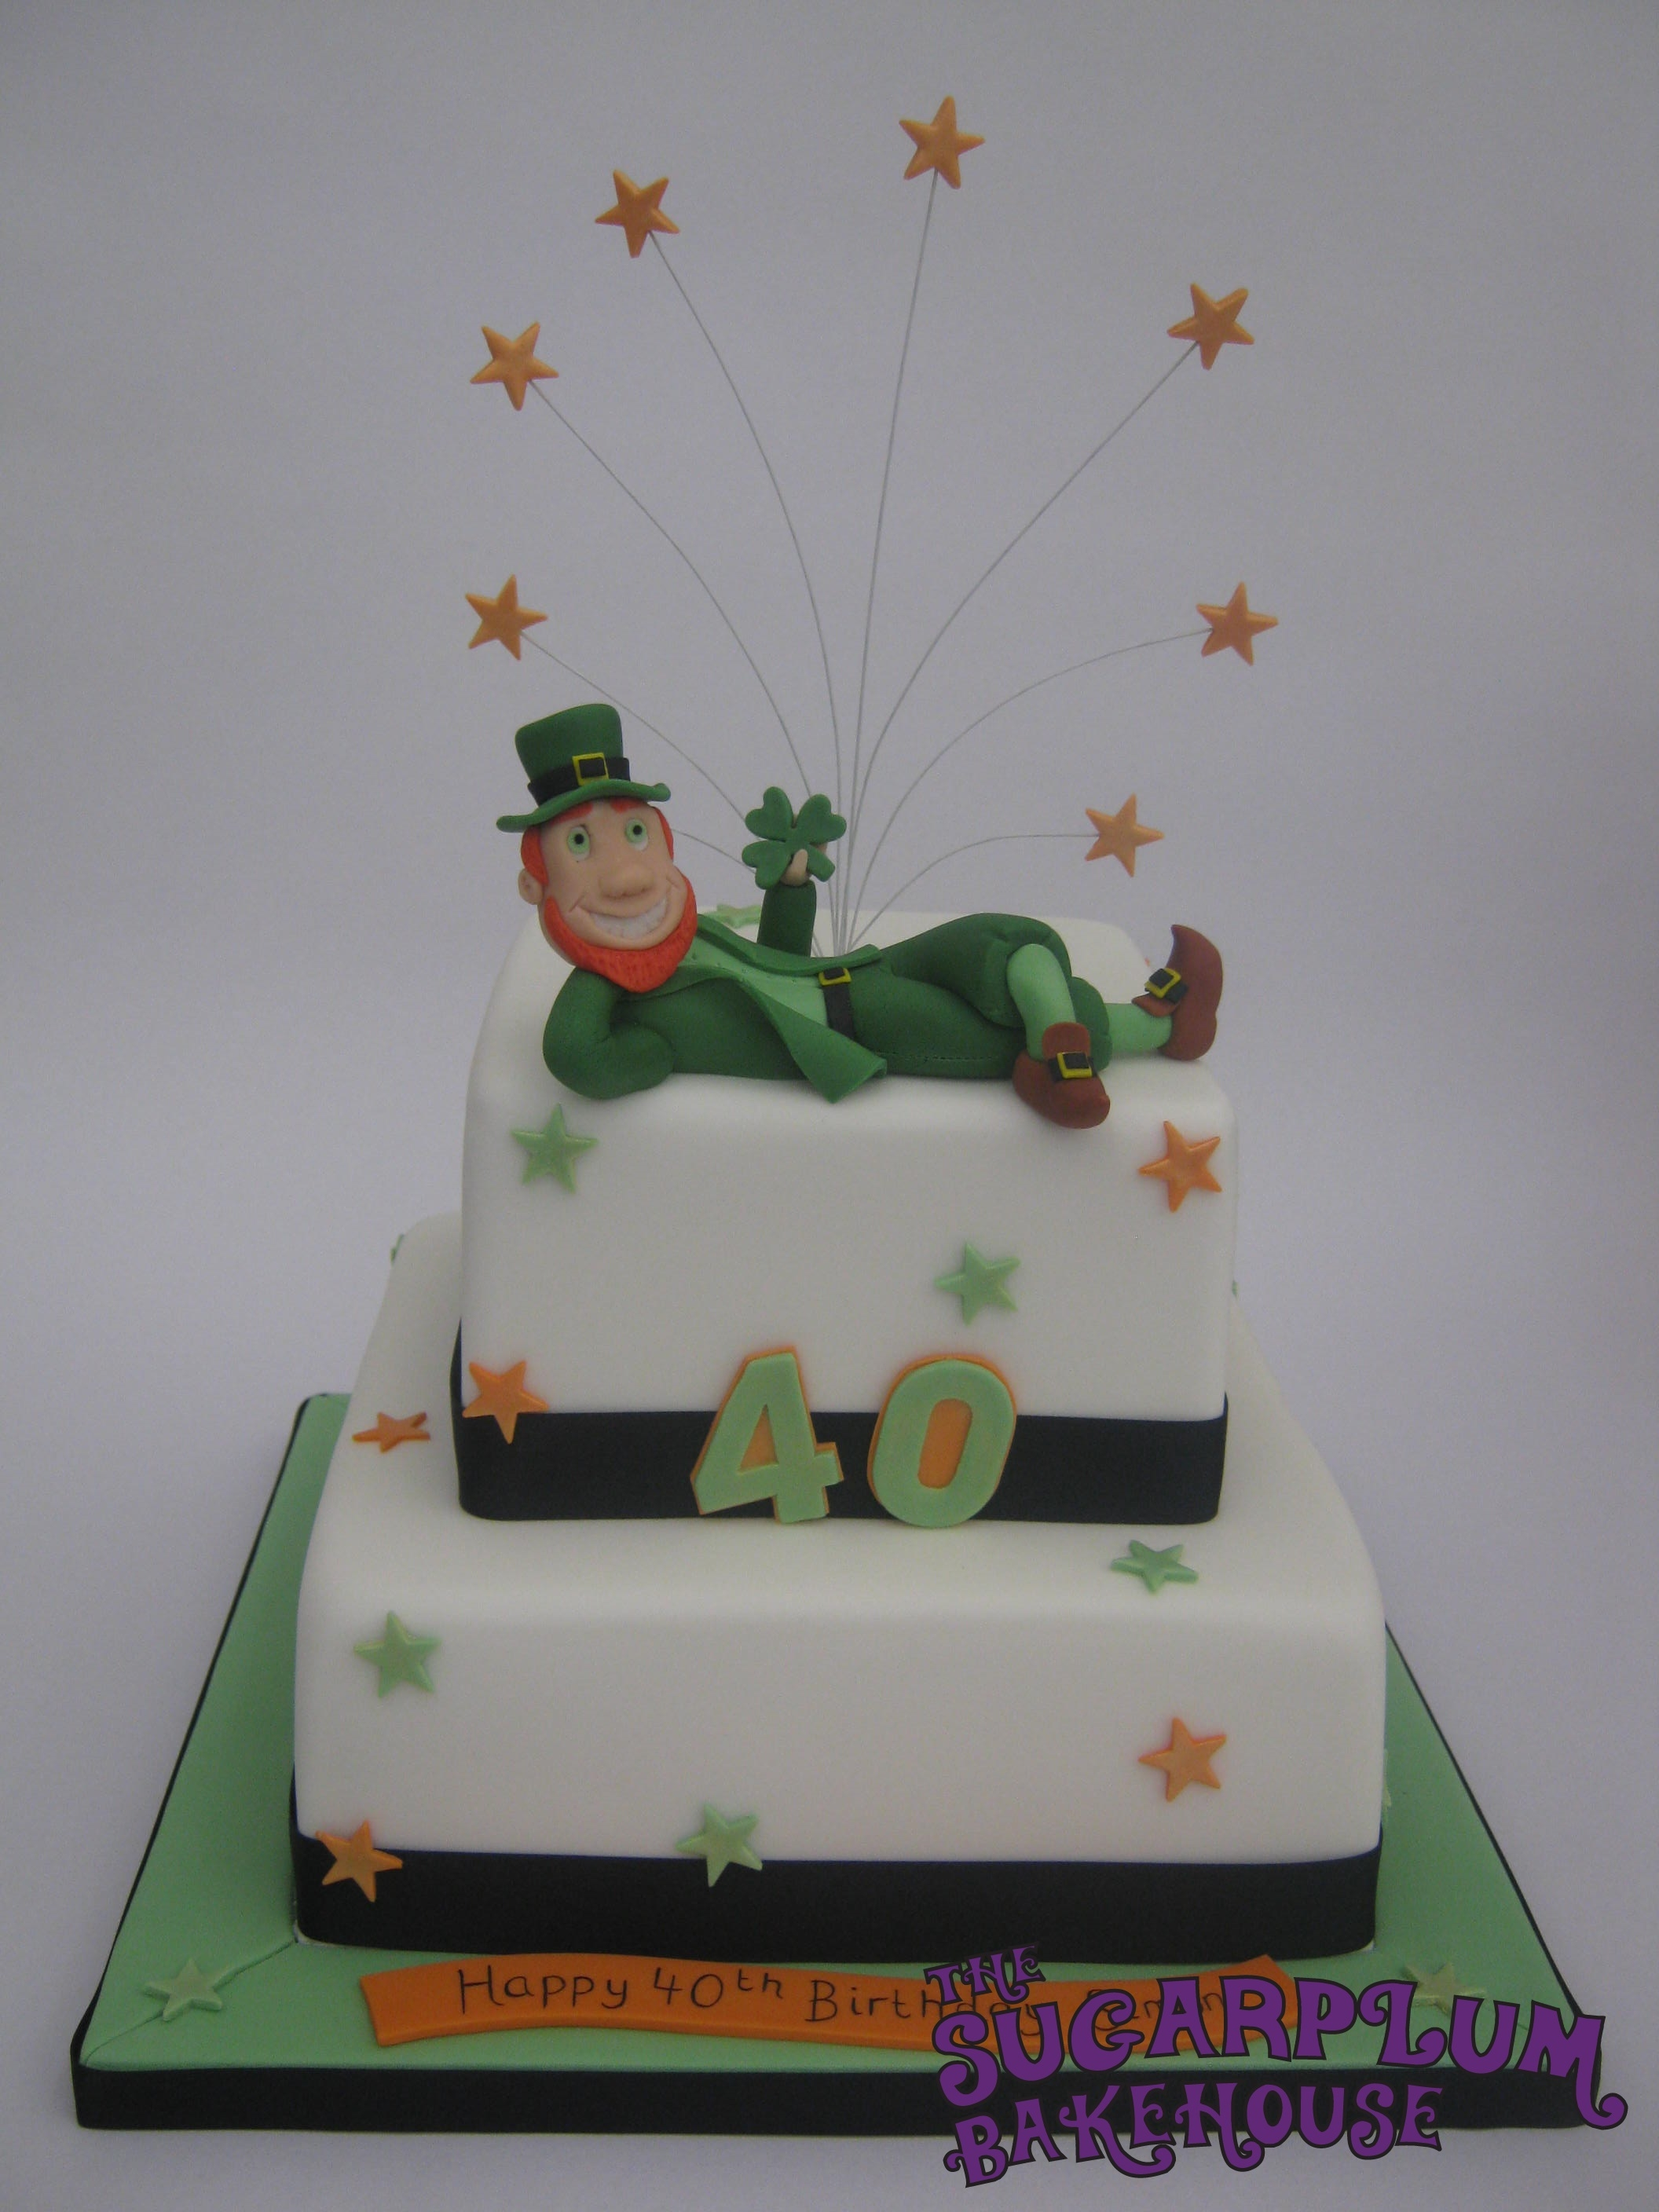 2 Tier Square Irish Themed 40th Birthday Cake